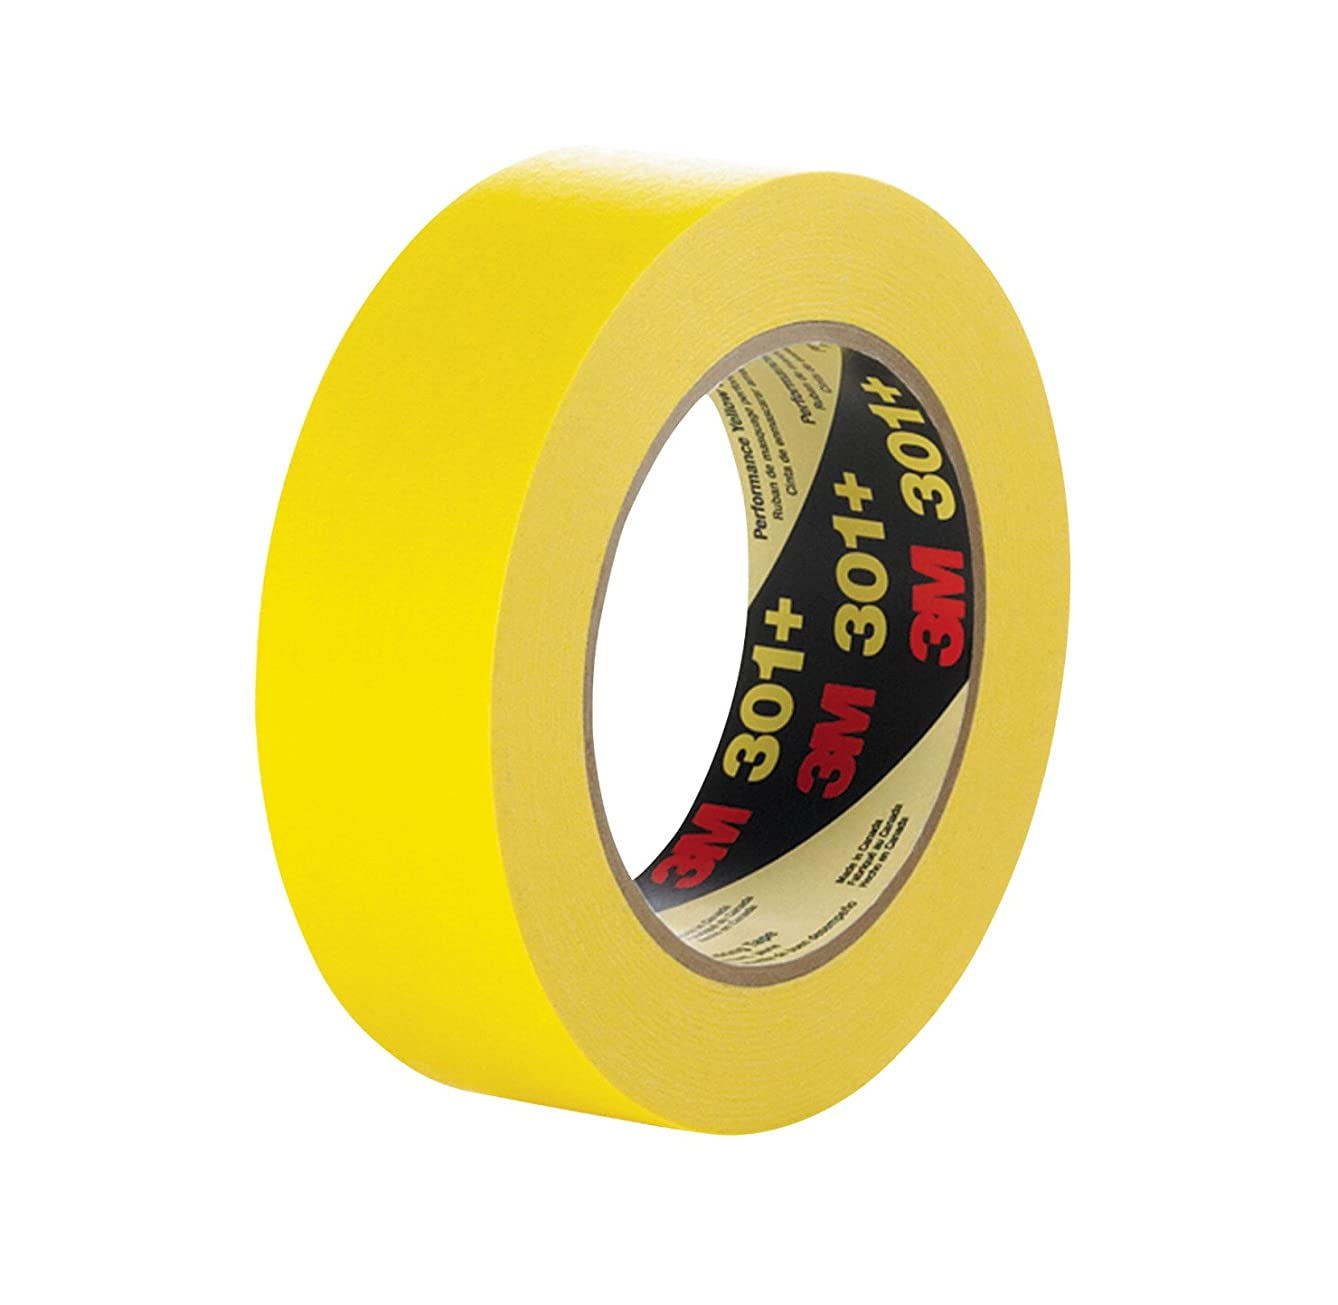 3M 301+18 301+ Yellow Masking or Painter's Tape, 18 mm Width e591070418063540